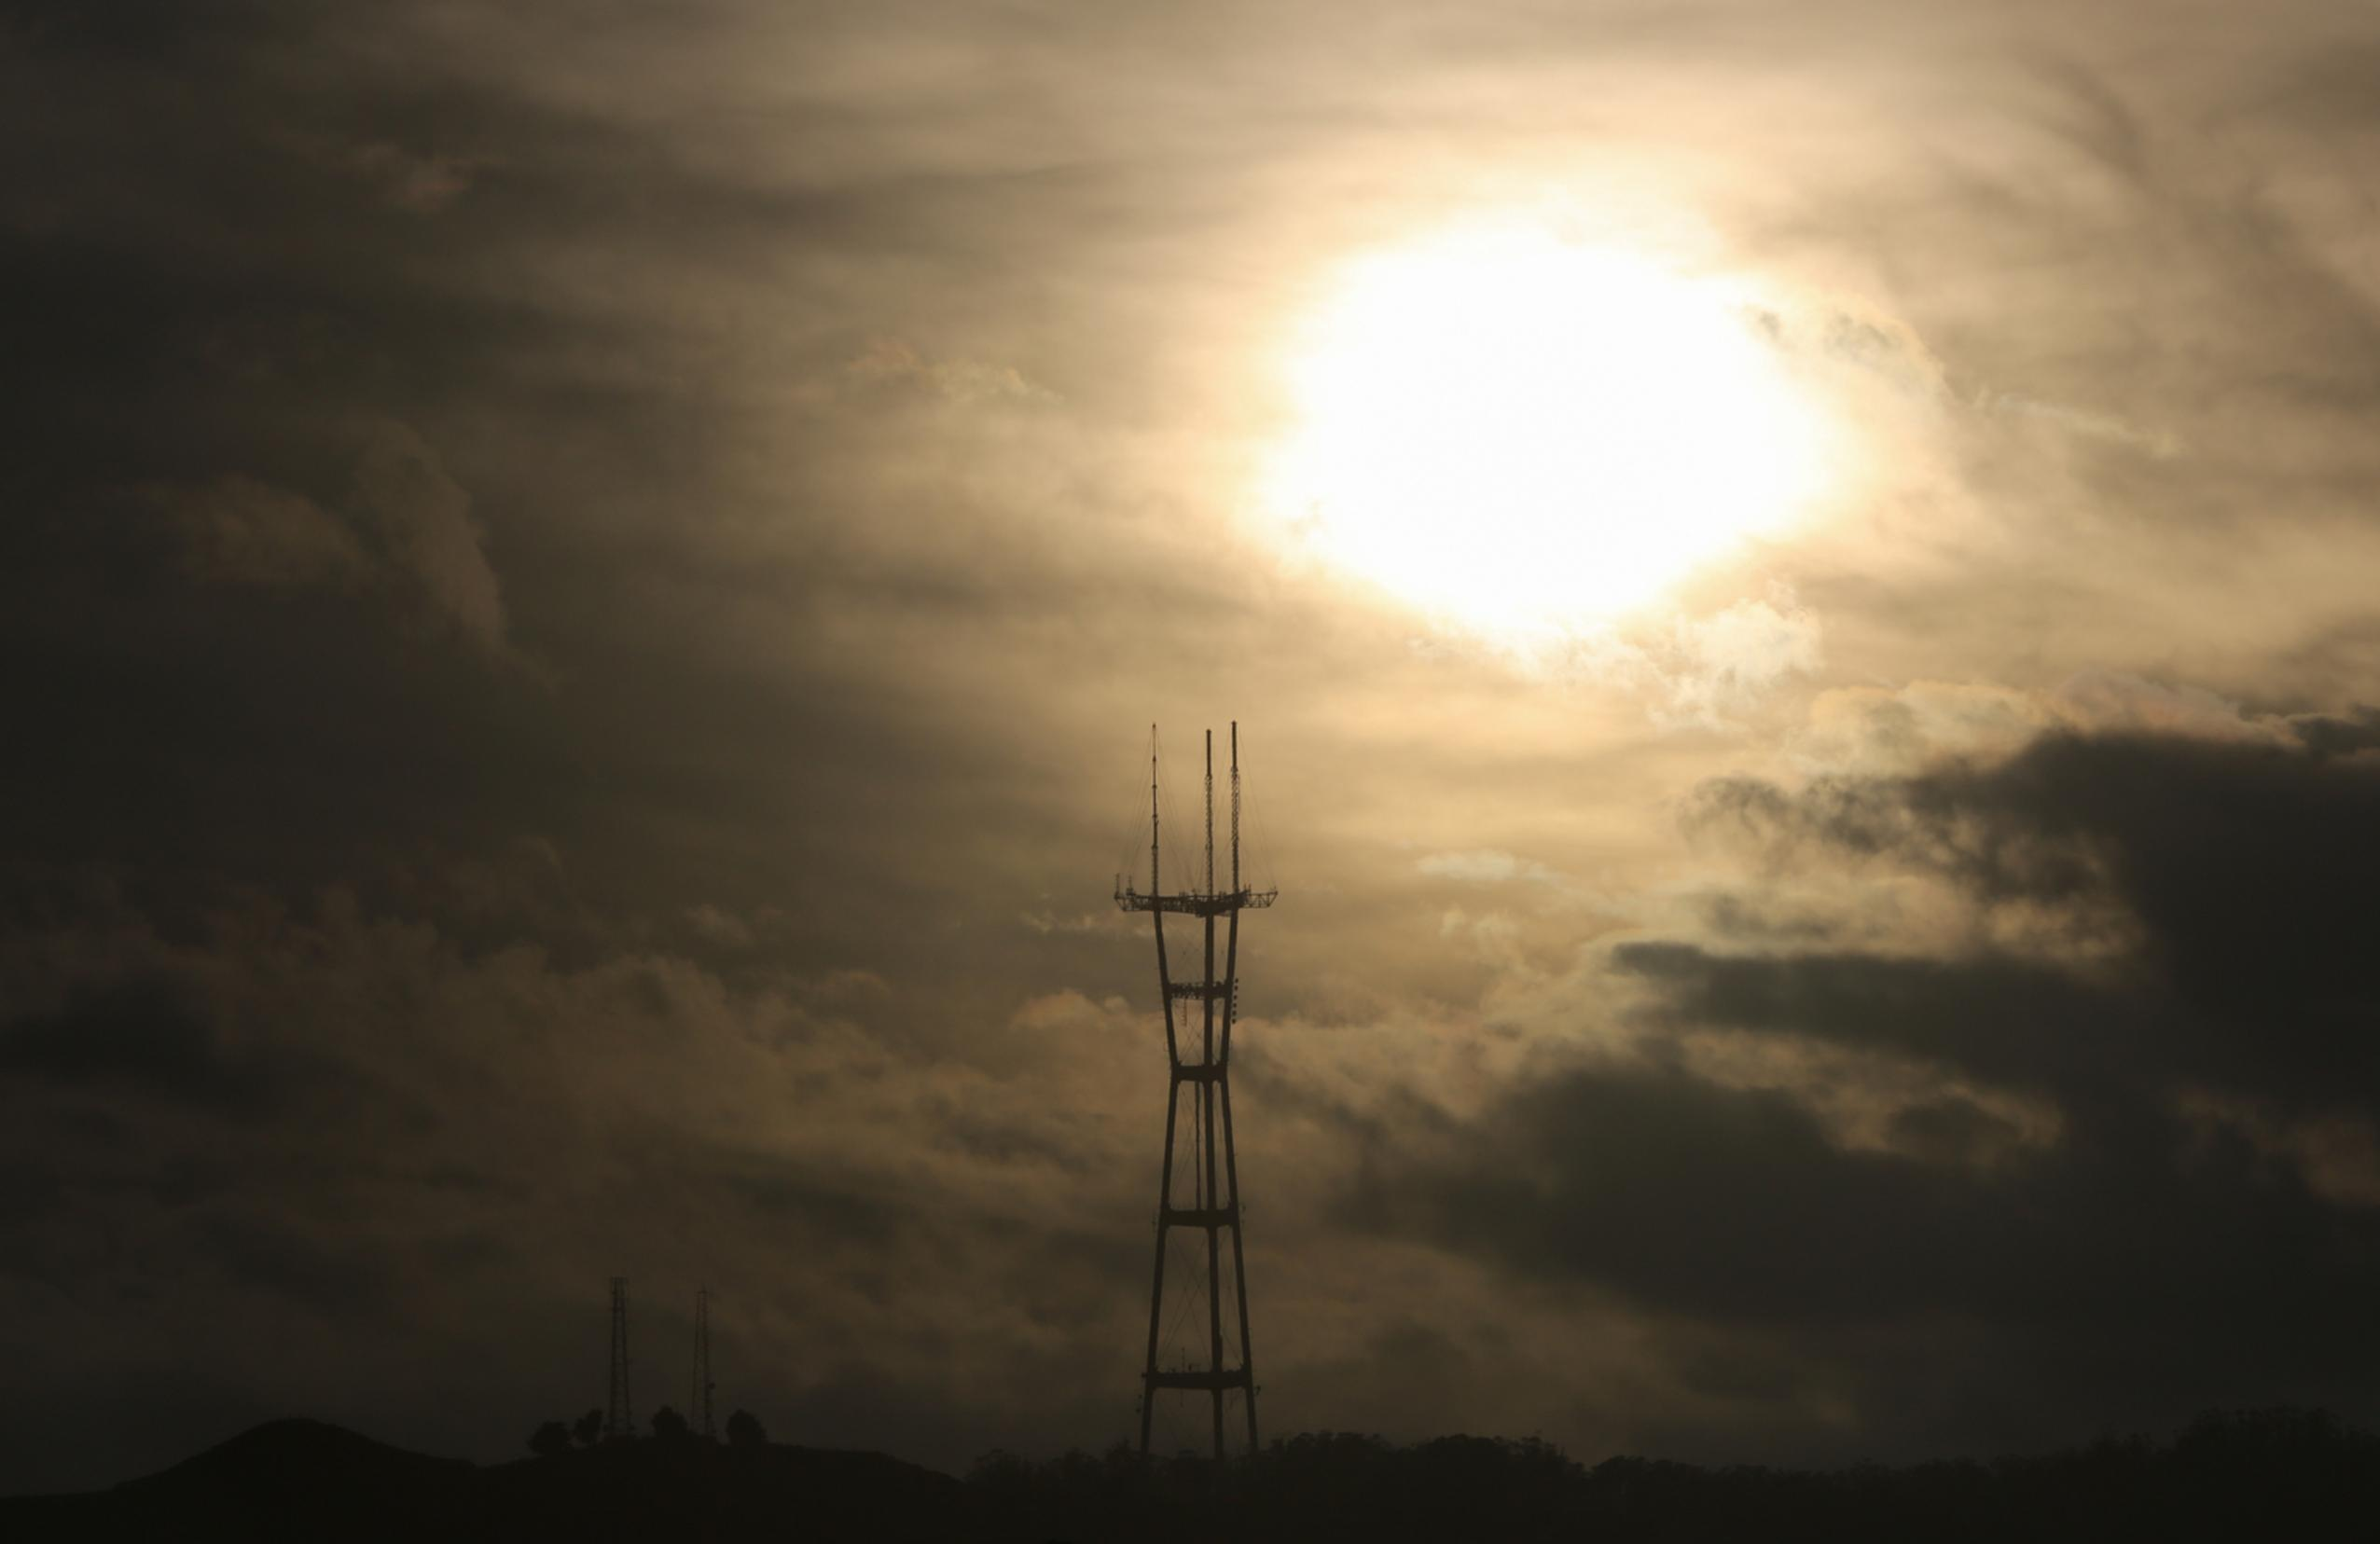 sutro tower clouds contrast summer sunset